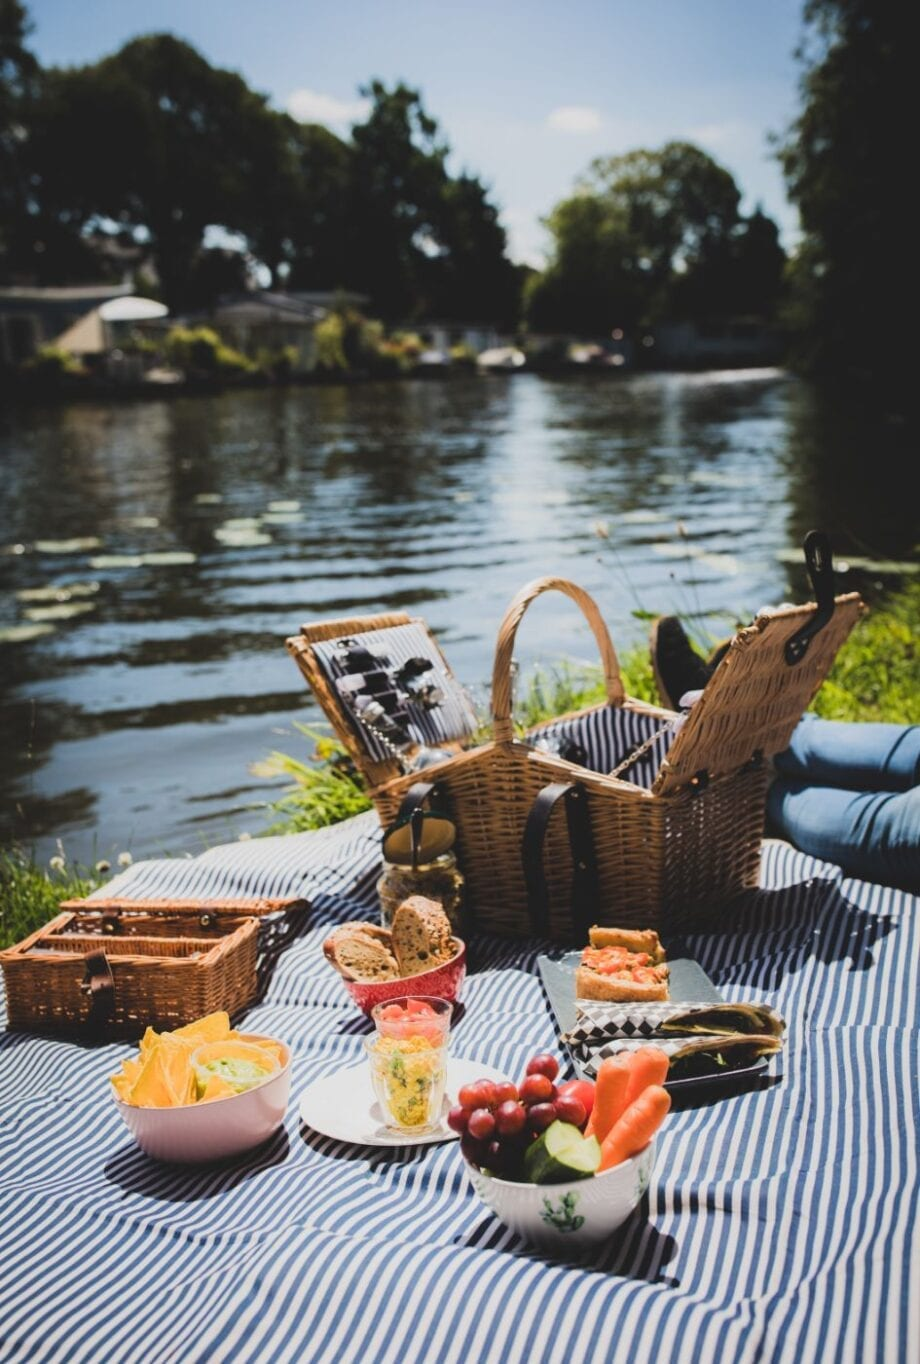 SH_product_picknick_027